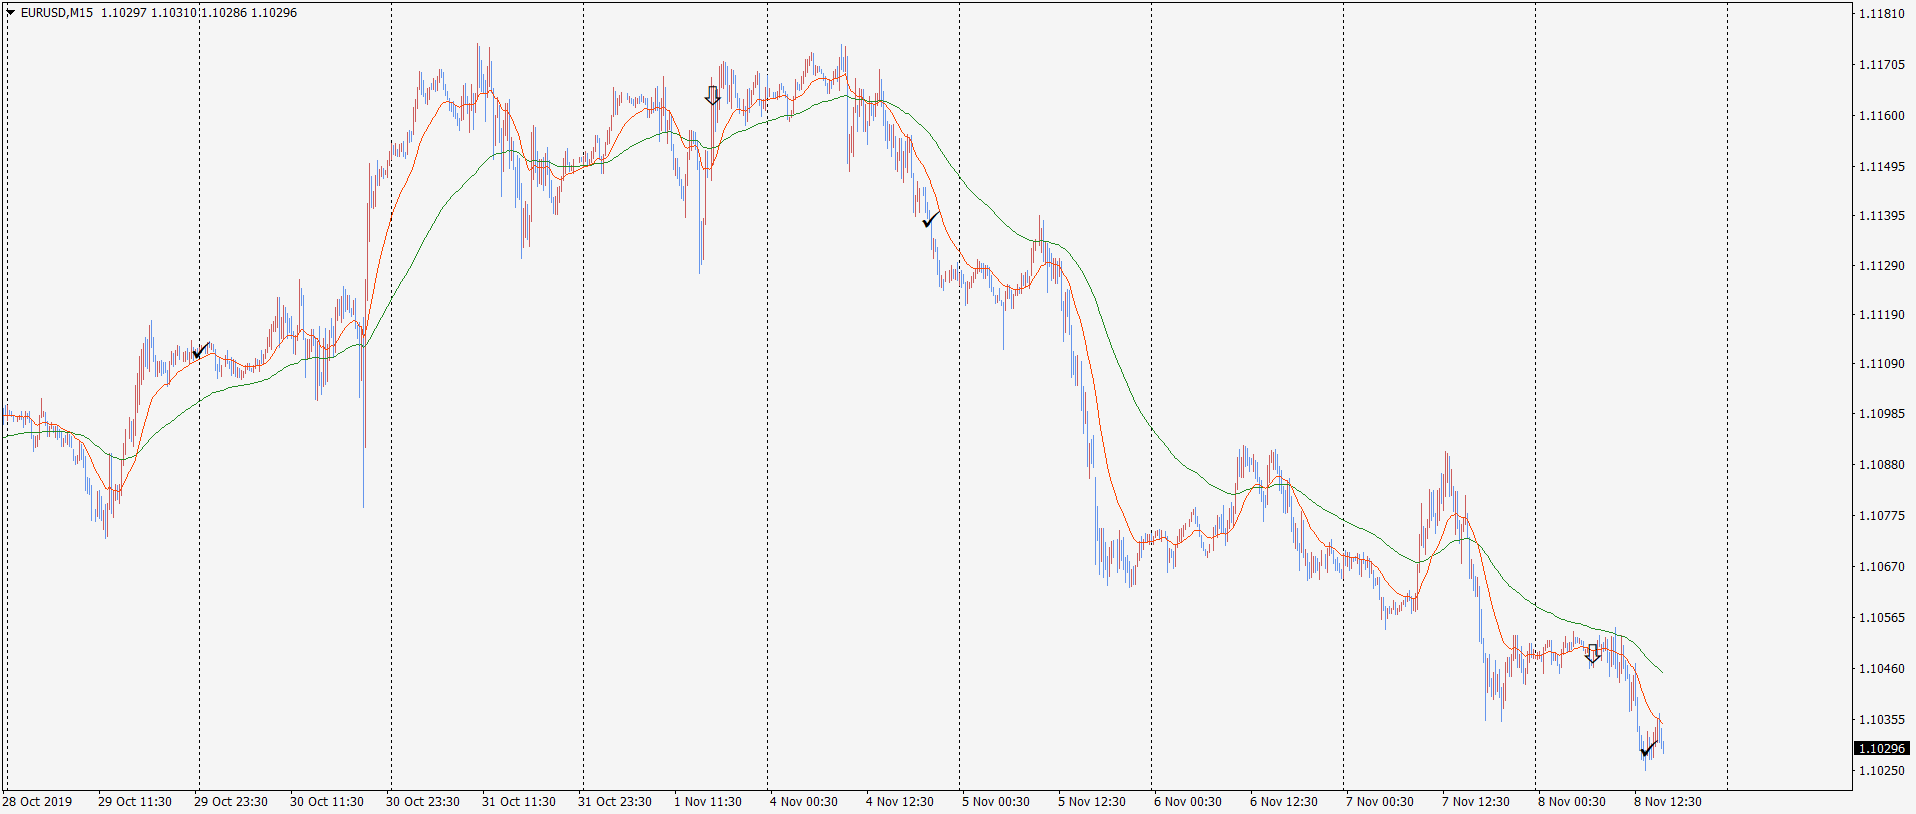 19-11-08-eurusd-m15-tradexfin-limited.png